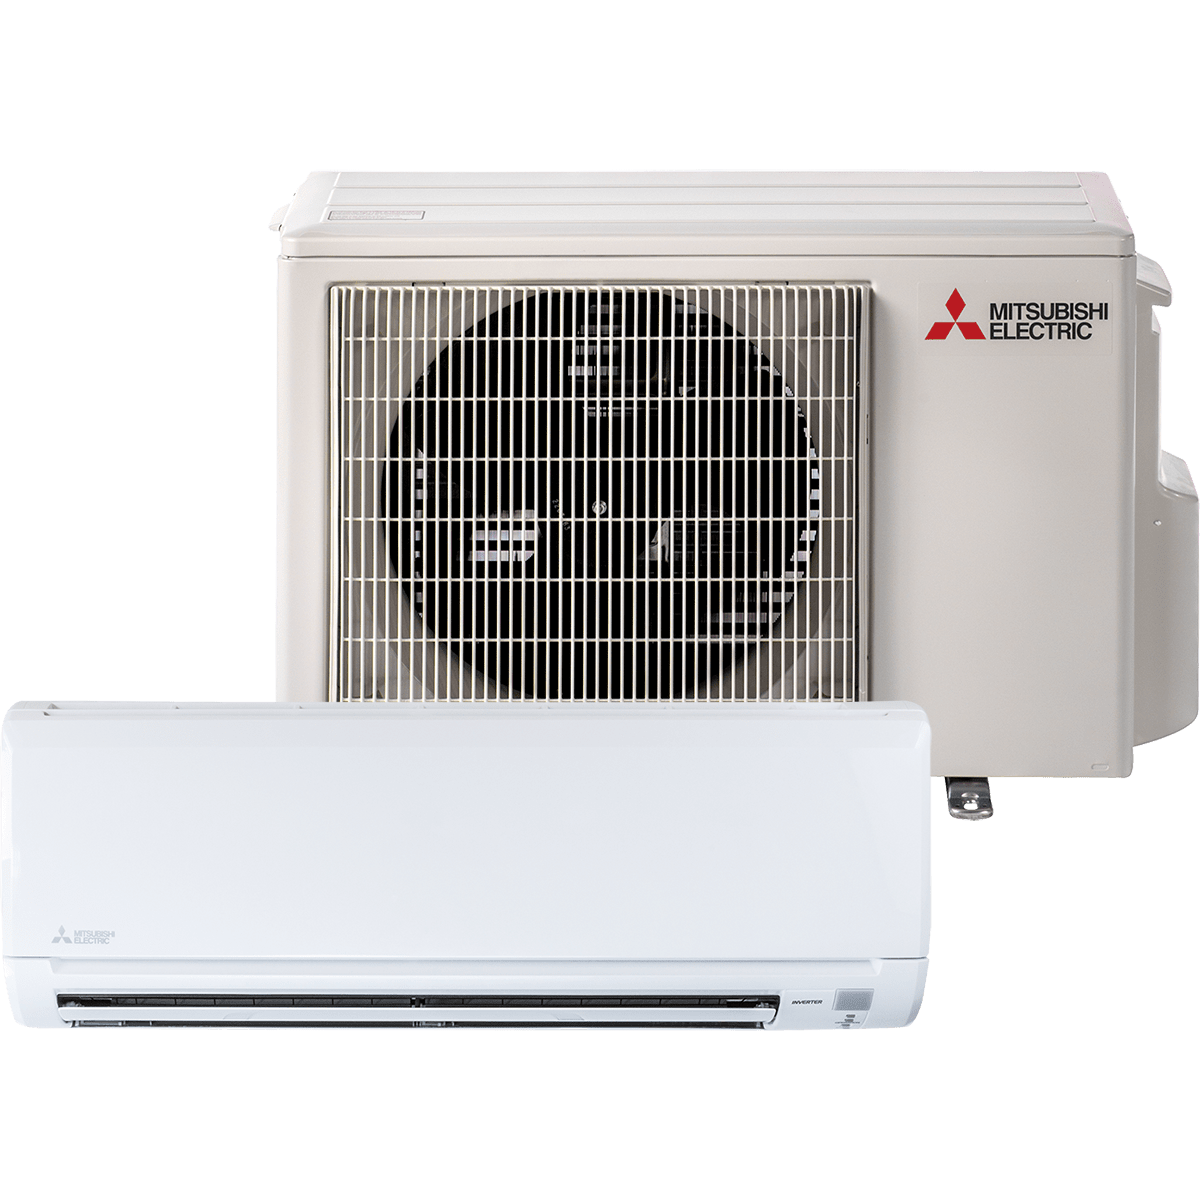 visit webapp p metal air fabrication heating repair in tidewater performed or hyper a installation conditioning of heat sheet mitsubishi and